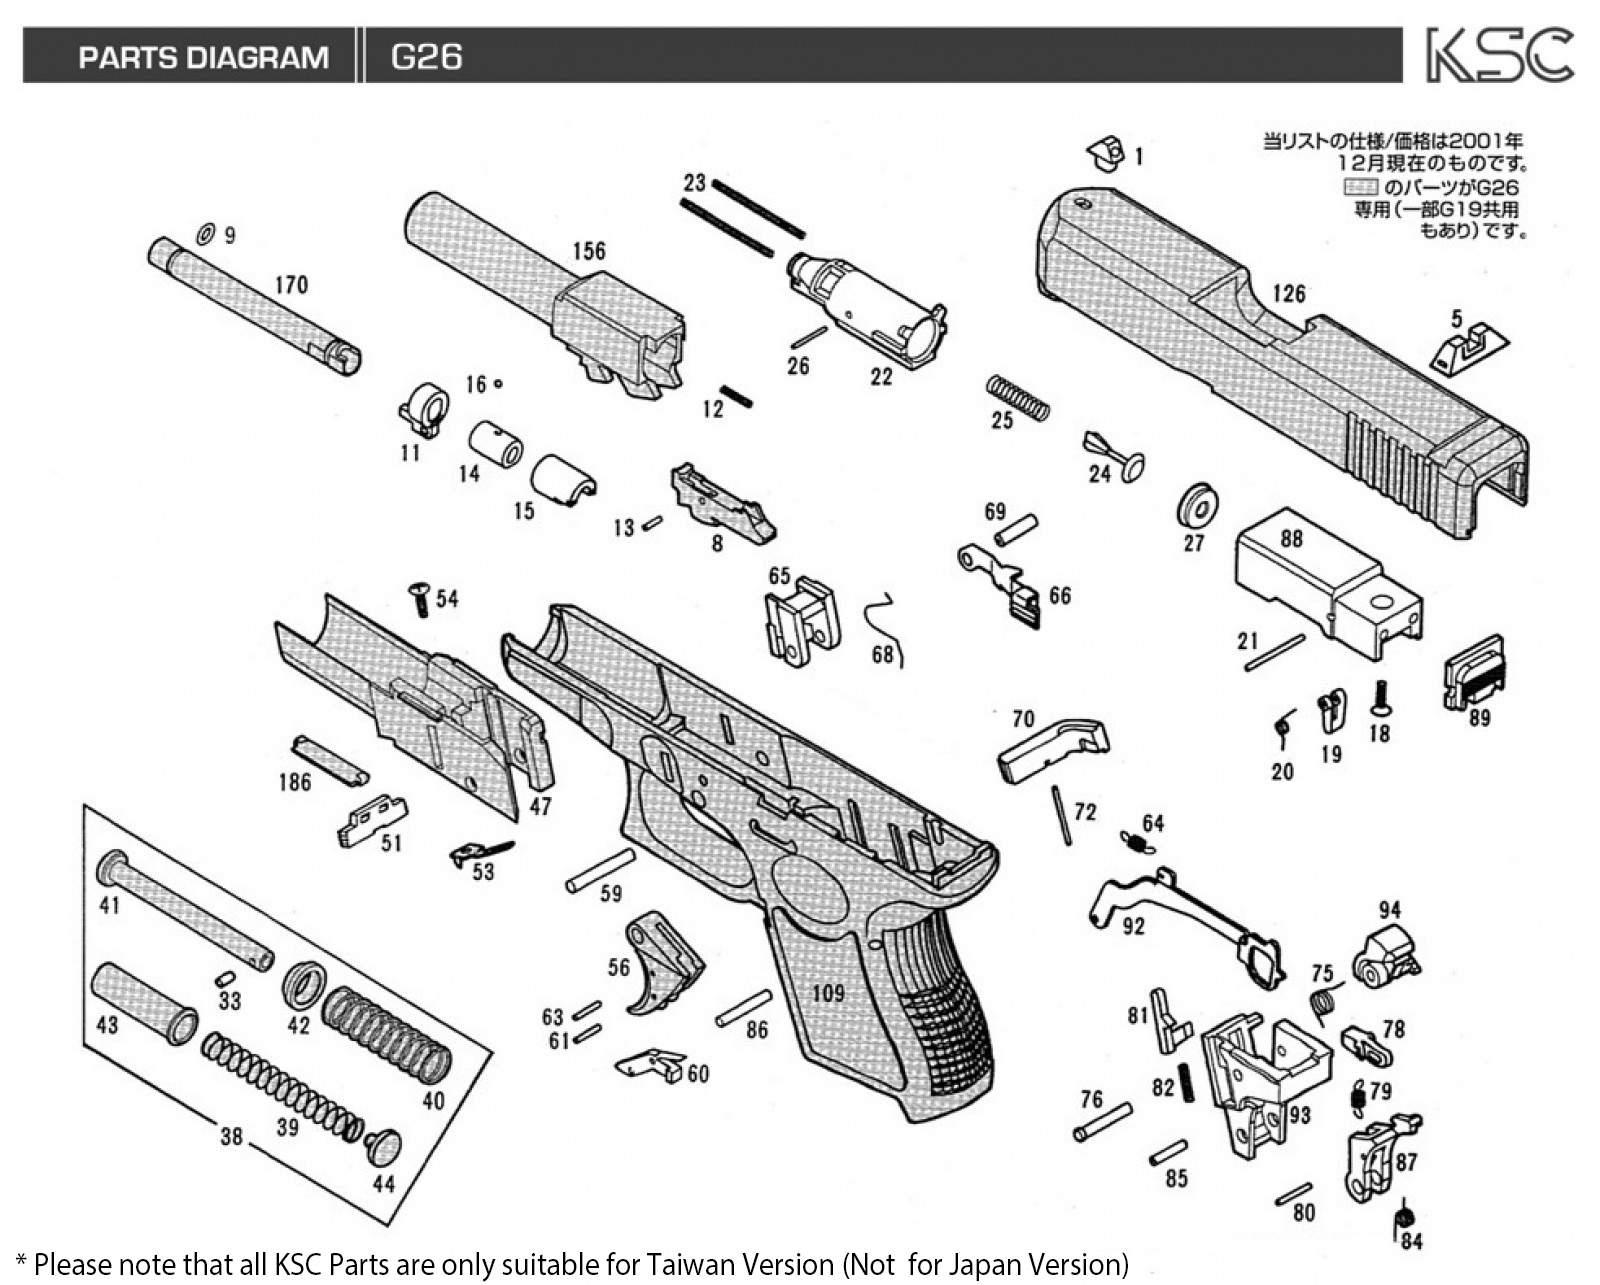 glock 23 disassembly diagram 1999 honda crv parts 17 gen 3 22 4 upgrades elsavadorla